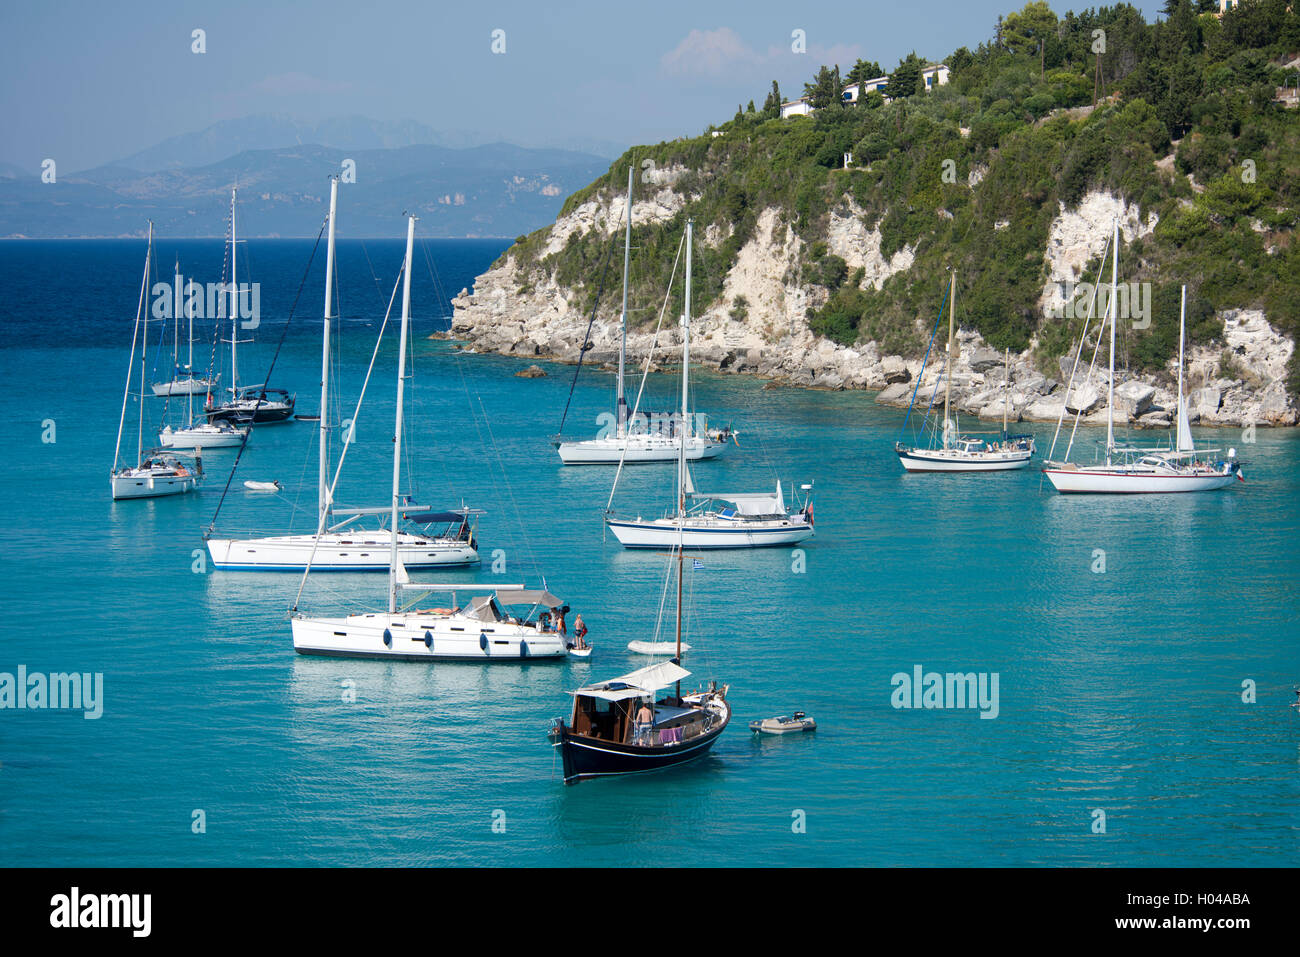 Sailing yachts in Lakka harbour on the island of Paxos, The Ionian Islands, The Greek Islands, Greece, Europe - Stock Image